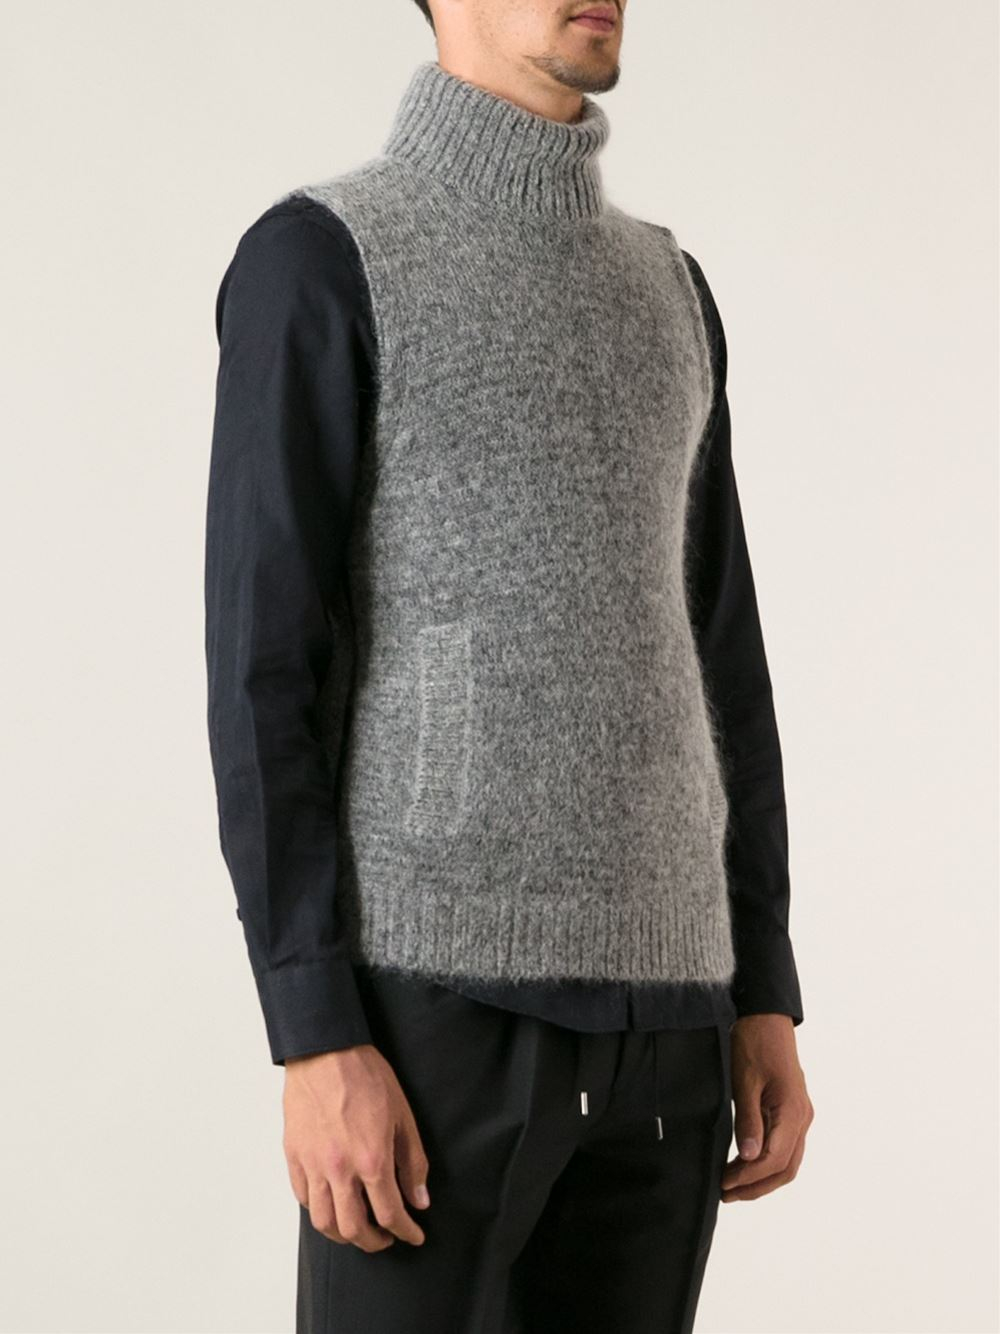 lyst emporio armani sleeveless sweater in gray for men. Black Bedroom Furniture Sets. Home Design Ideas